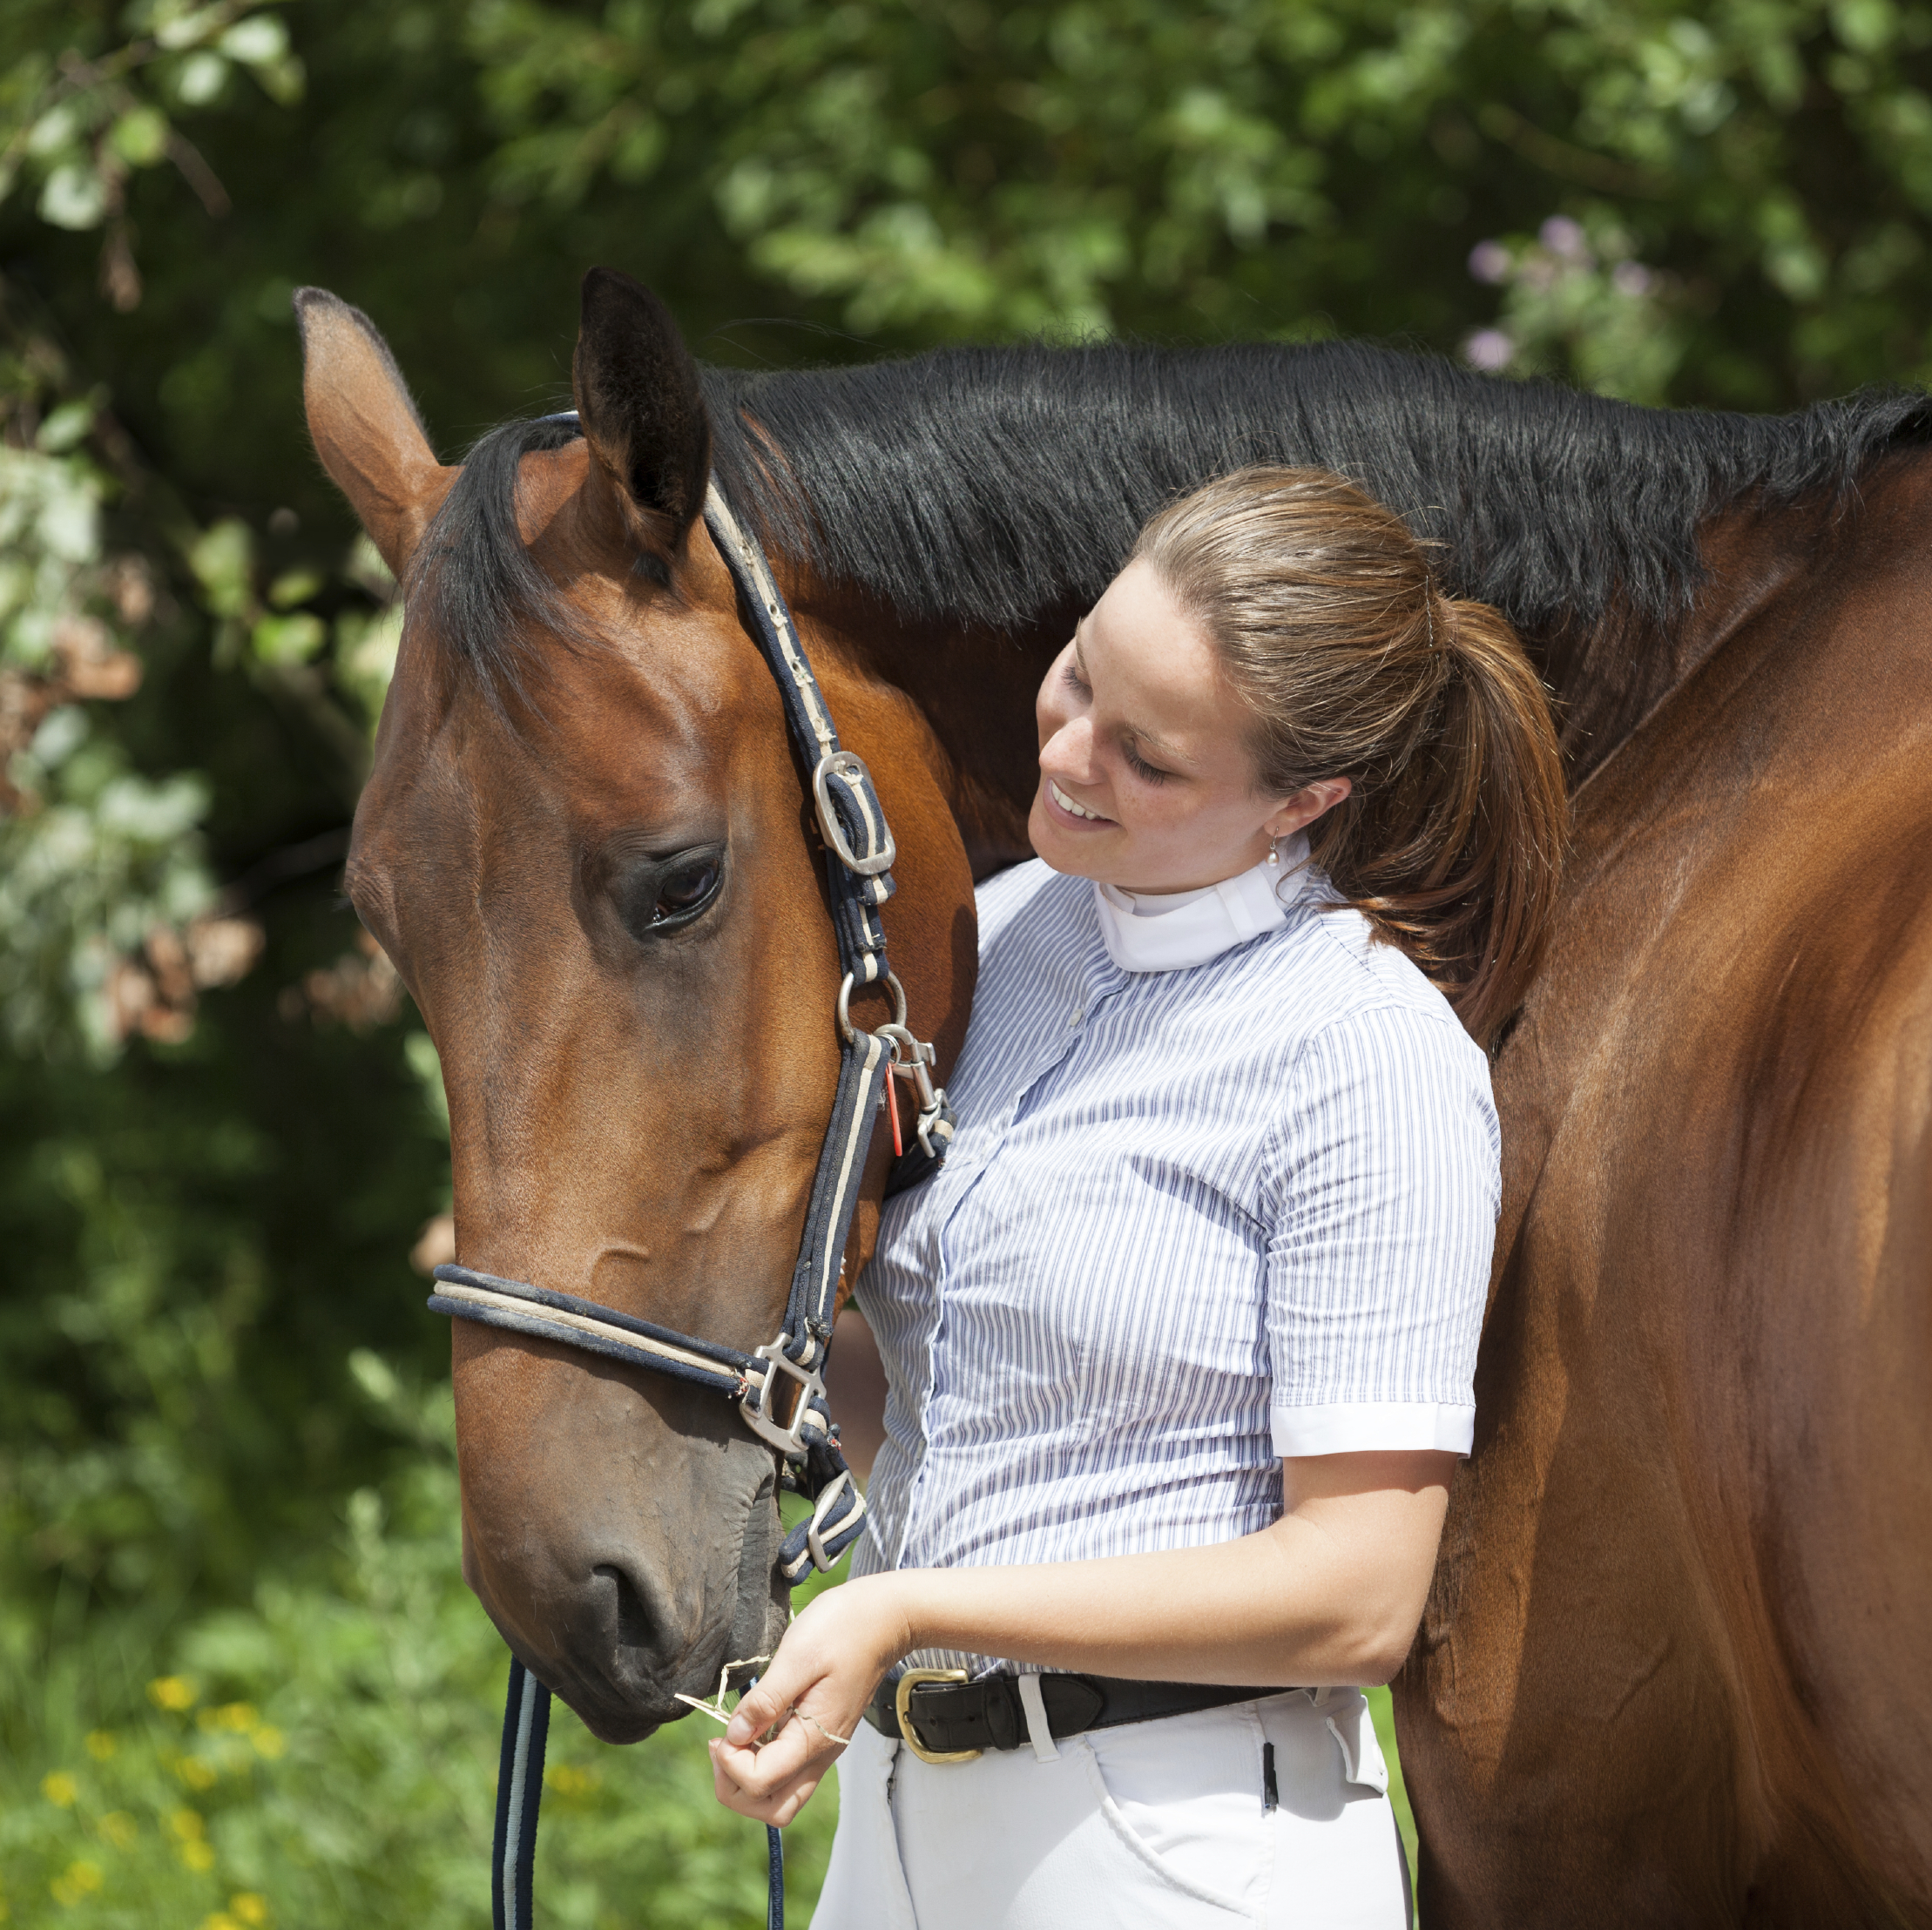 Horse Behaviour and Safety Youth Course - Girl and horse